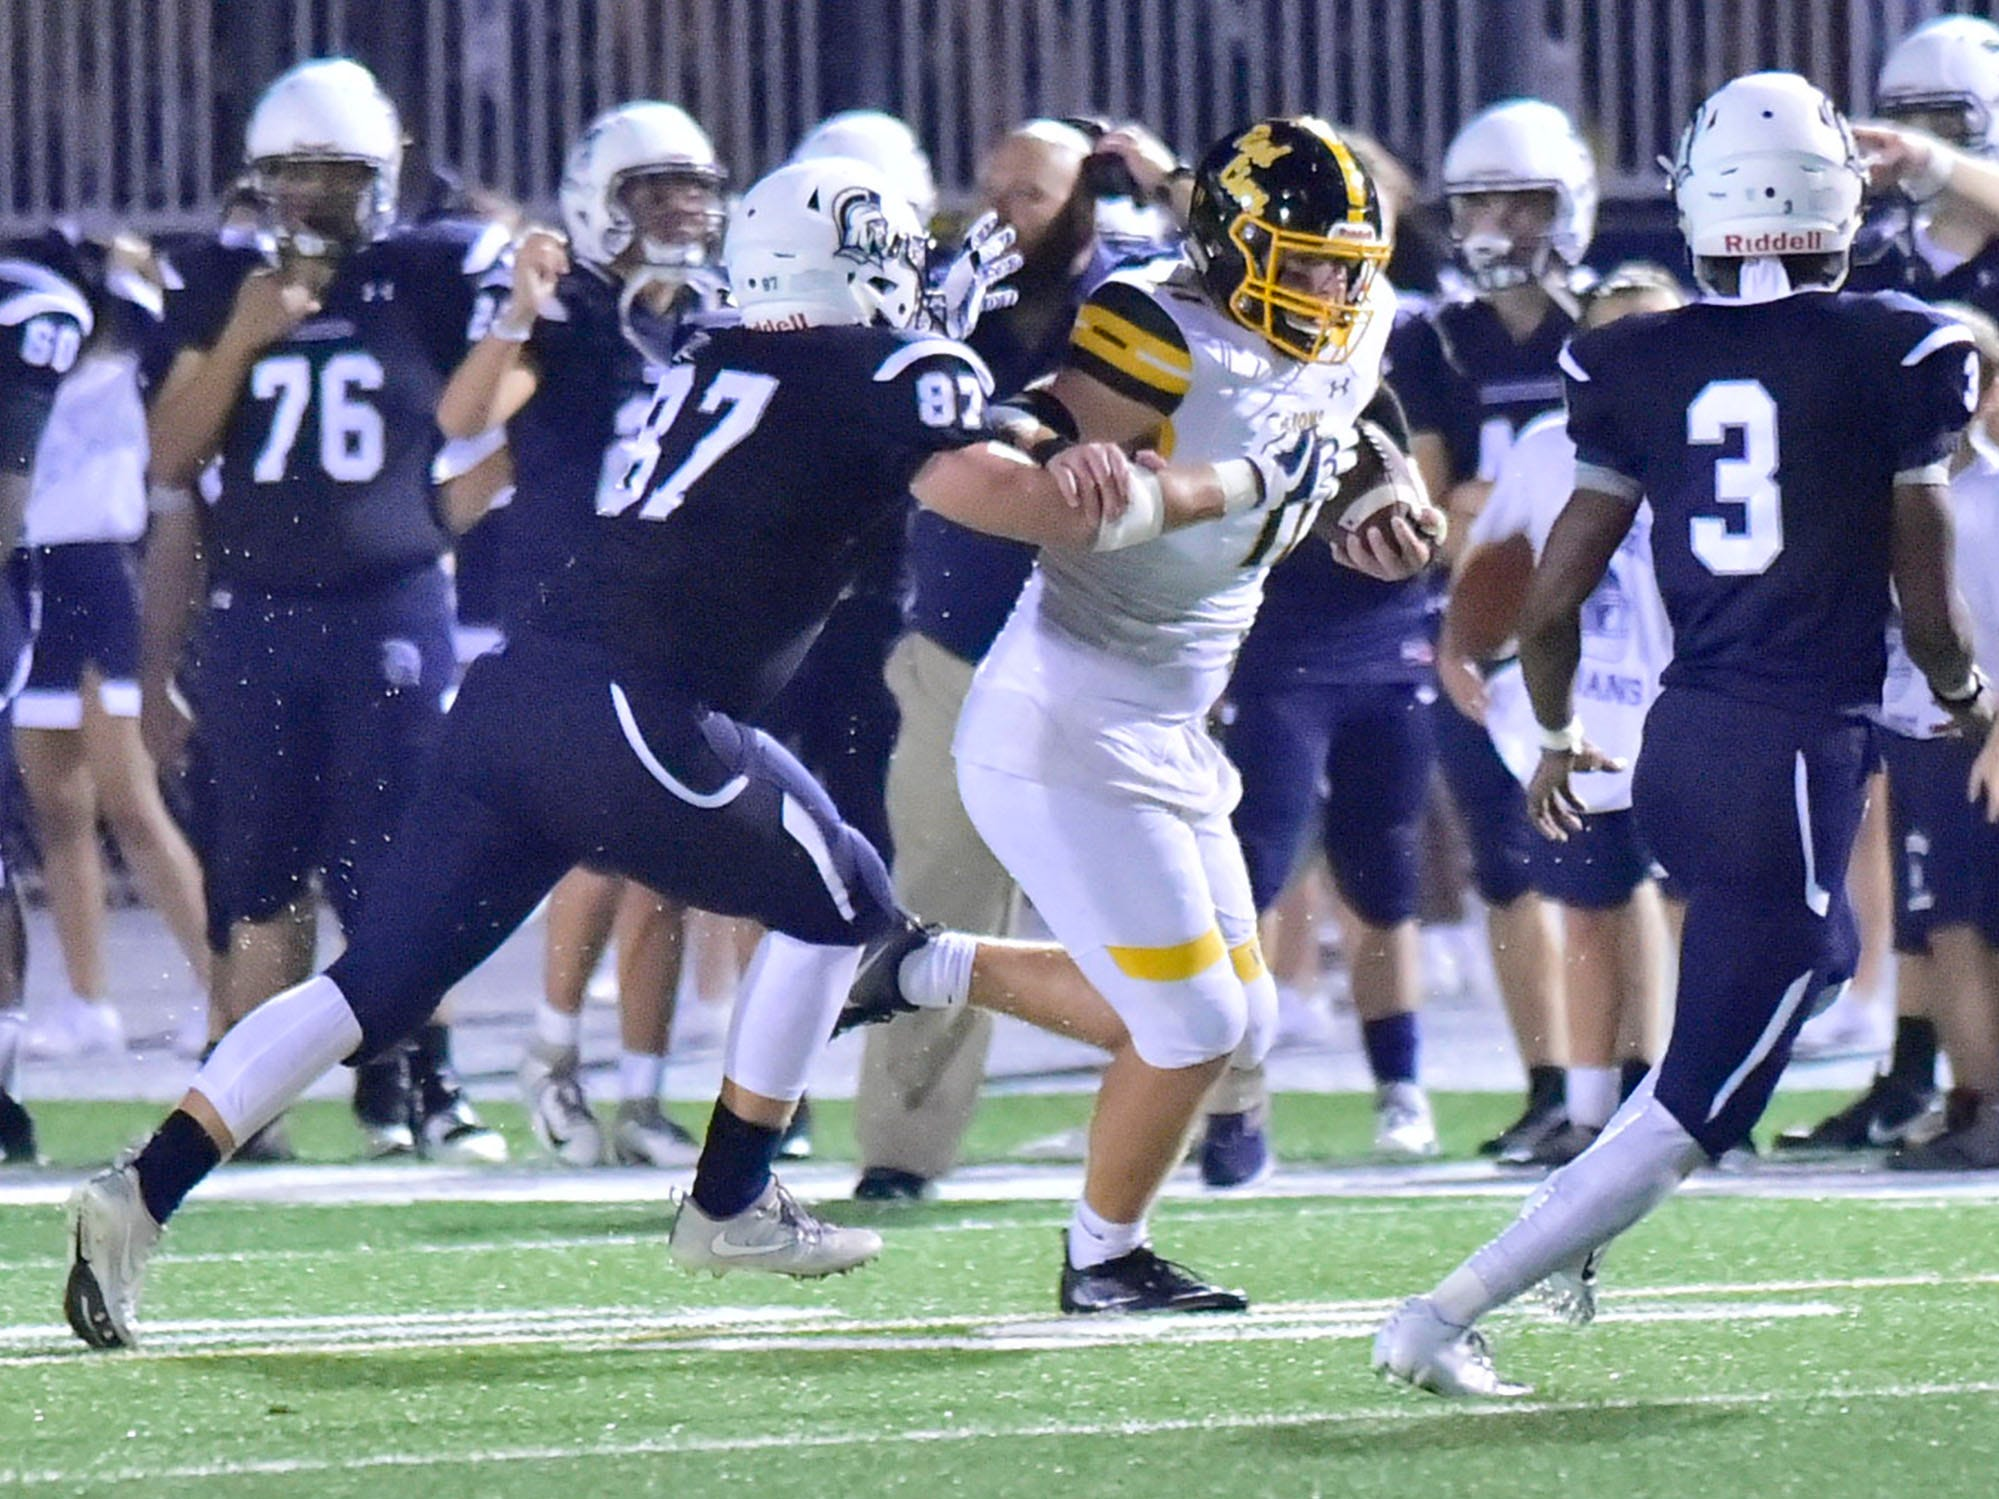 Red Lion's Elijah Workinger (11) is in the grasp of Bryce Diller (87) of Chambersburg. Chambersburg defeated Red Lion 28-19 in PIAA football on Friday, Sept. 7, 2018.